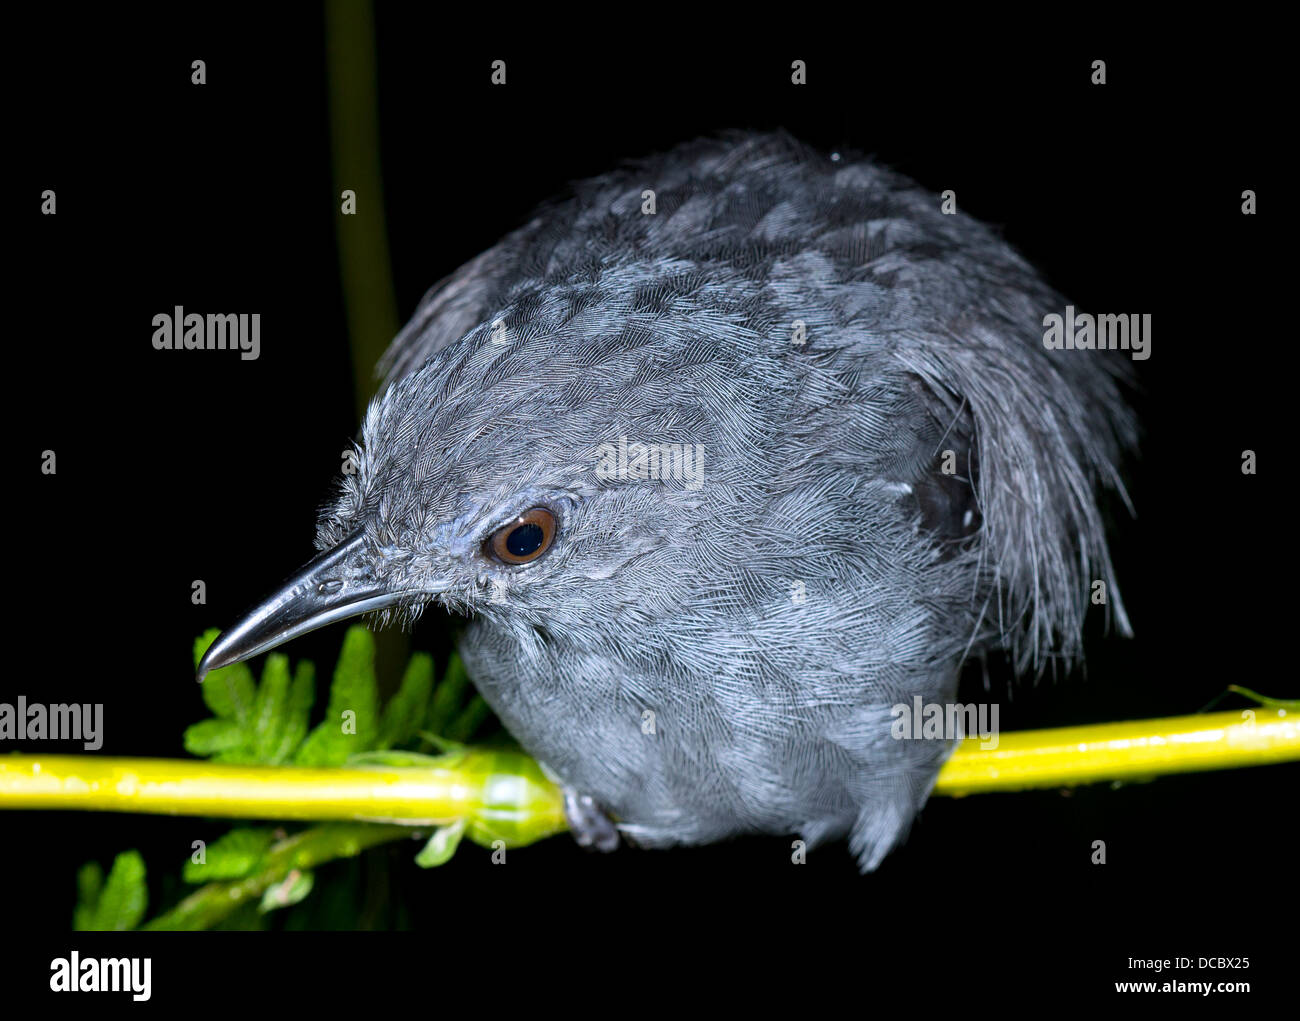 Unidentified bird roosting at night in the rainforest understory, Ecuador - Stock Image